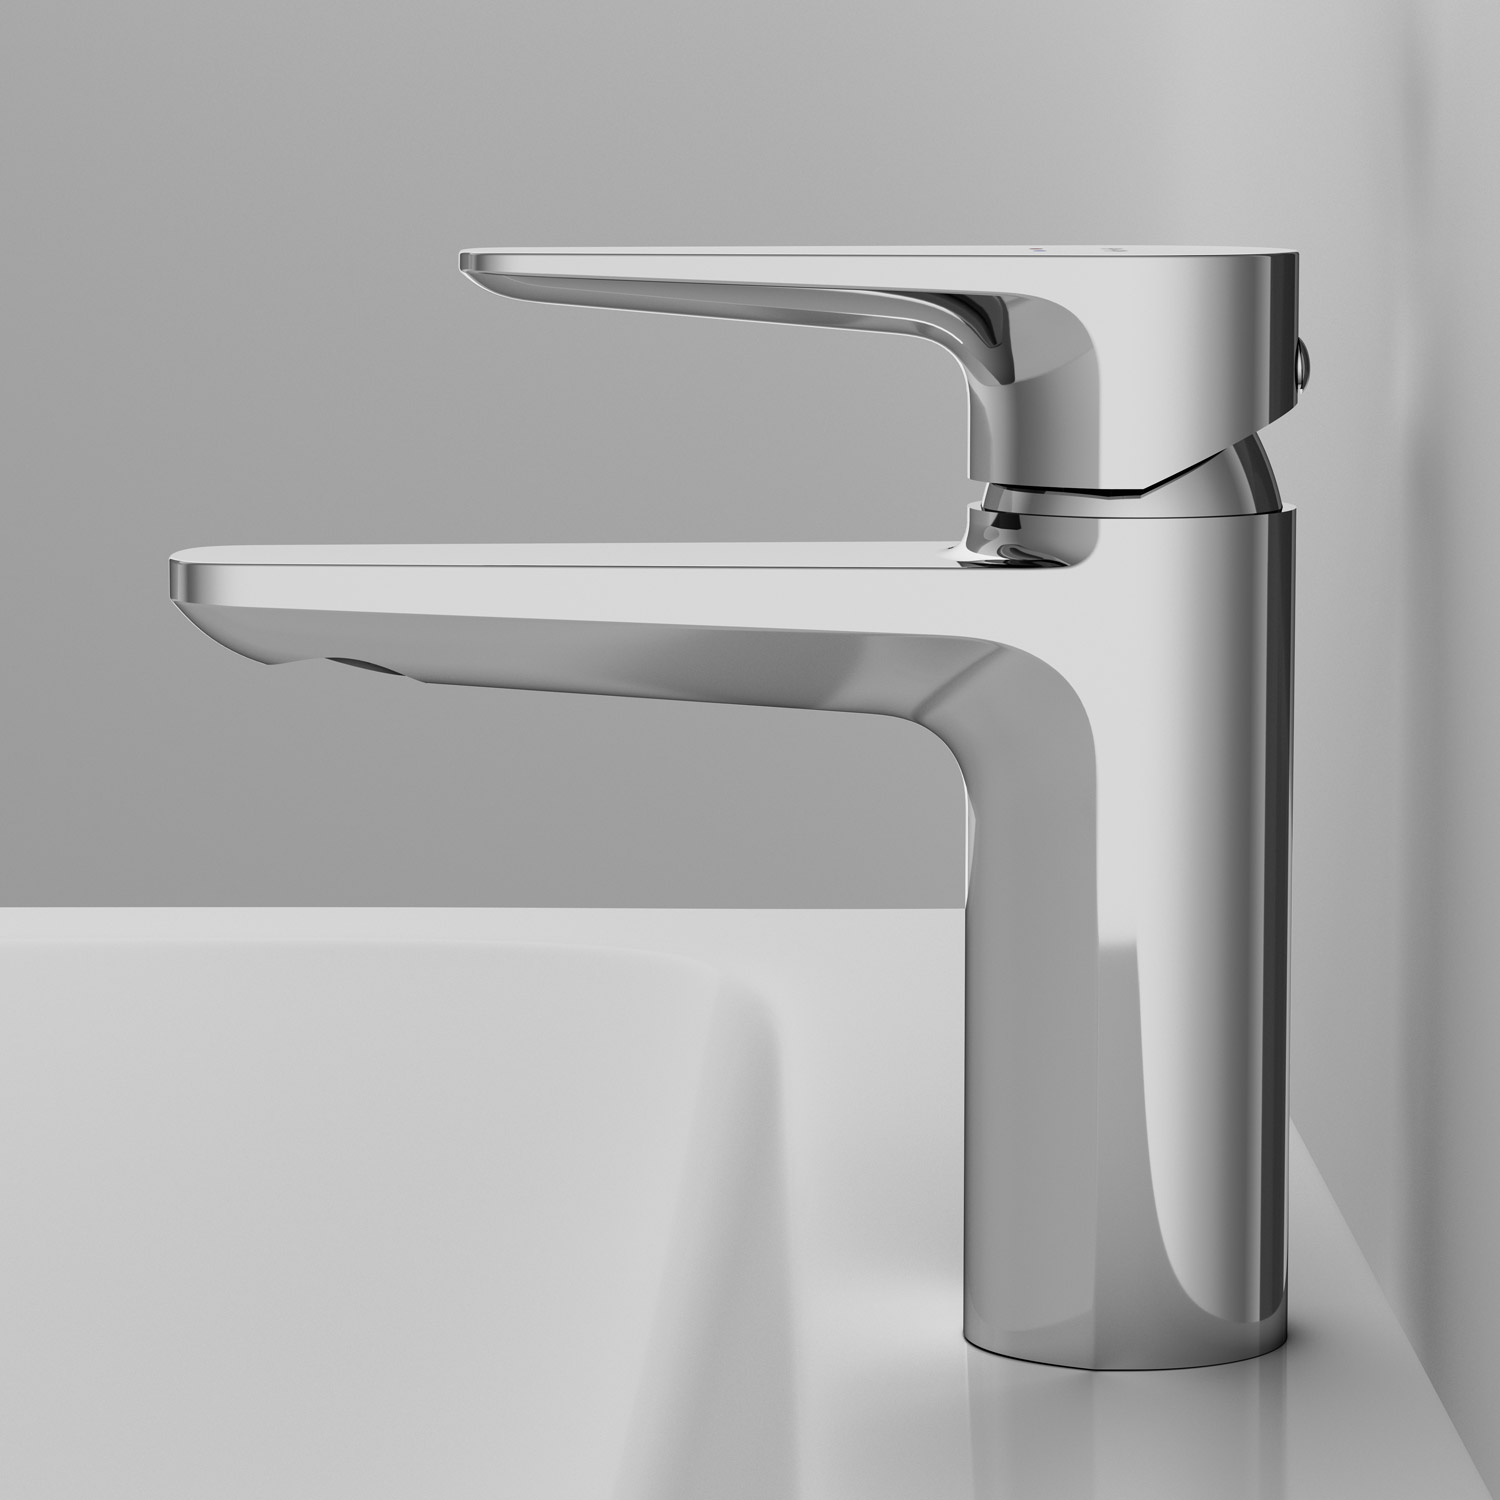 F5082100 Single-lever basin mixer with waste set